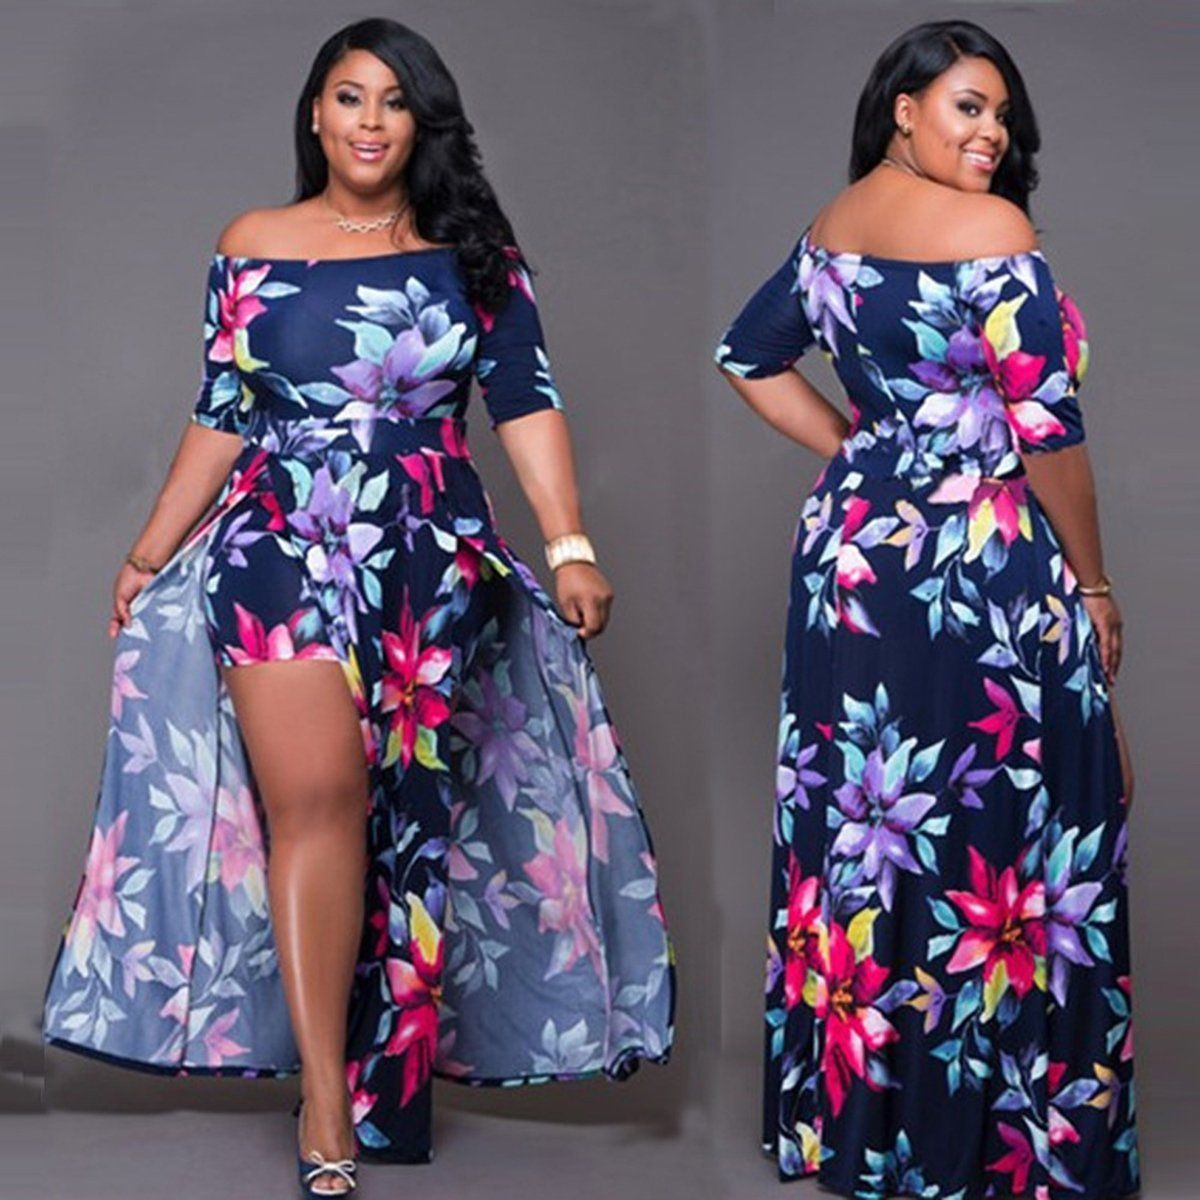 Awesomecurvesfashionoftheweek plus size fashion for women